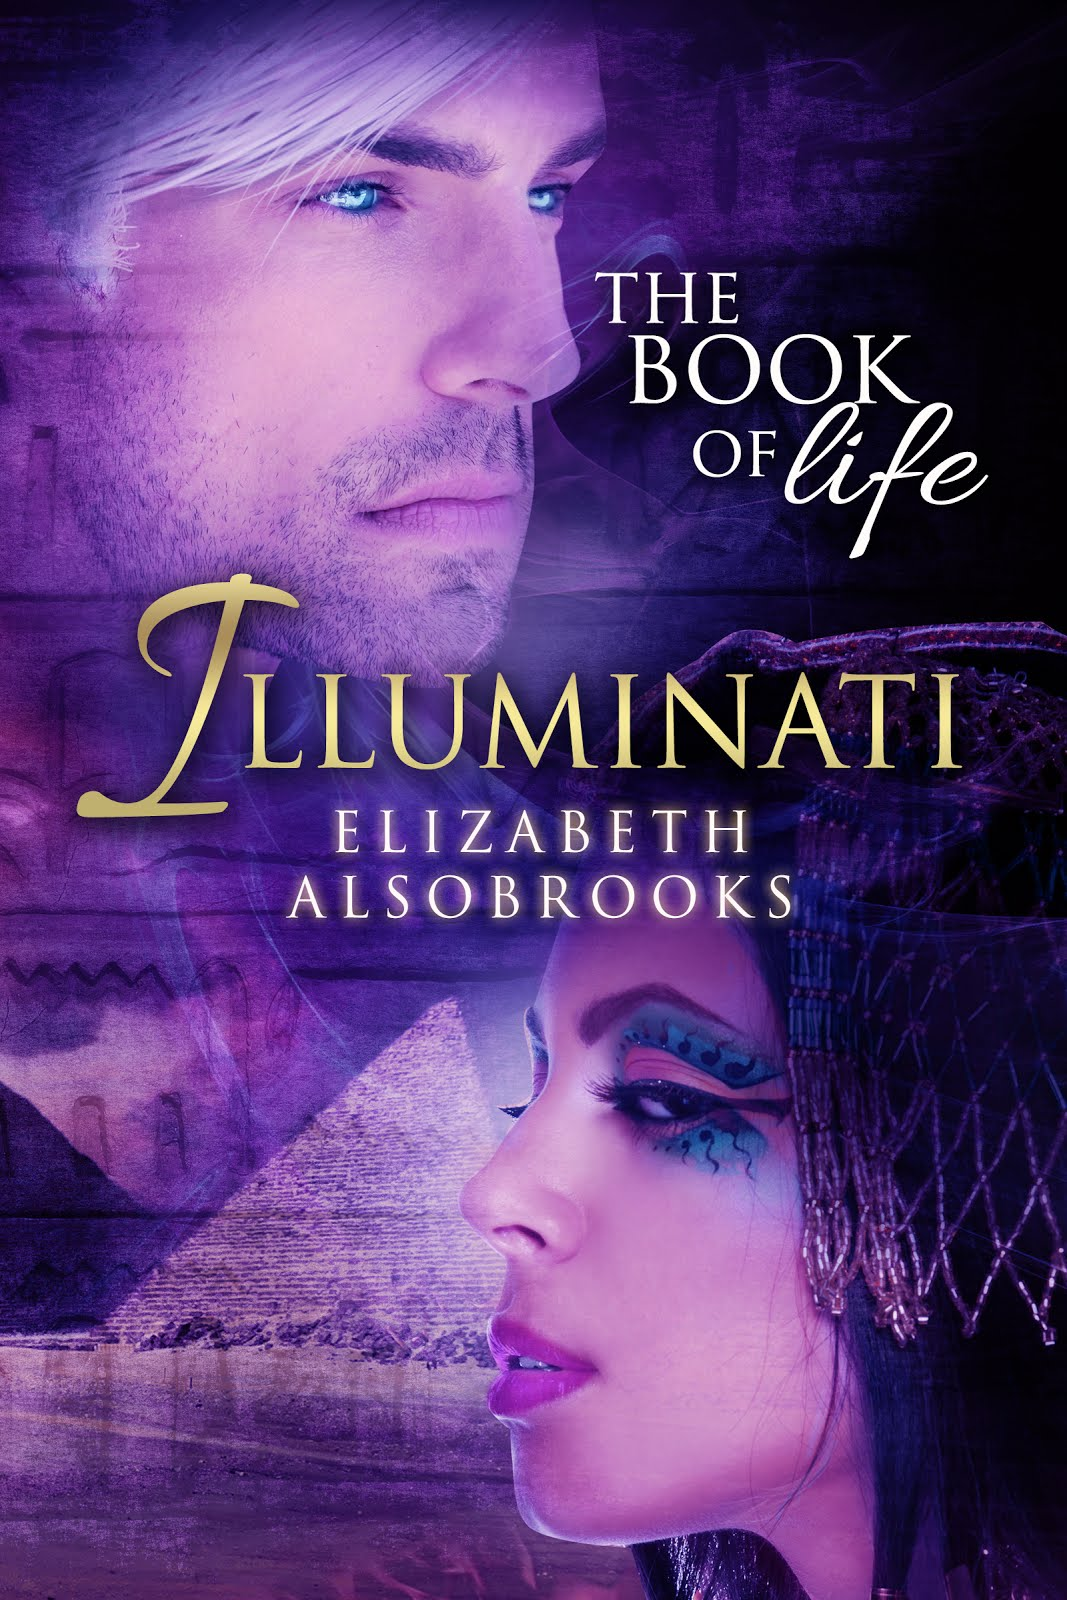 Illuminati Series, Book I